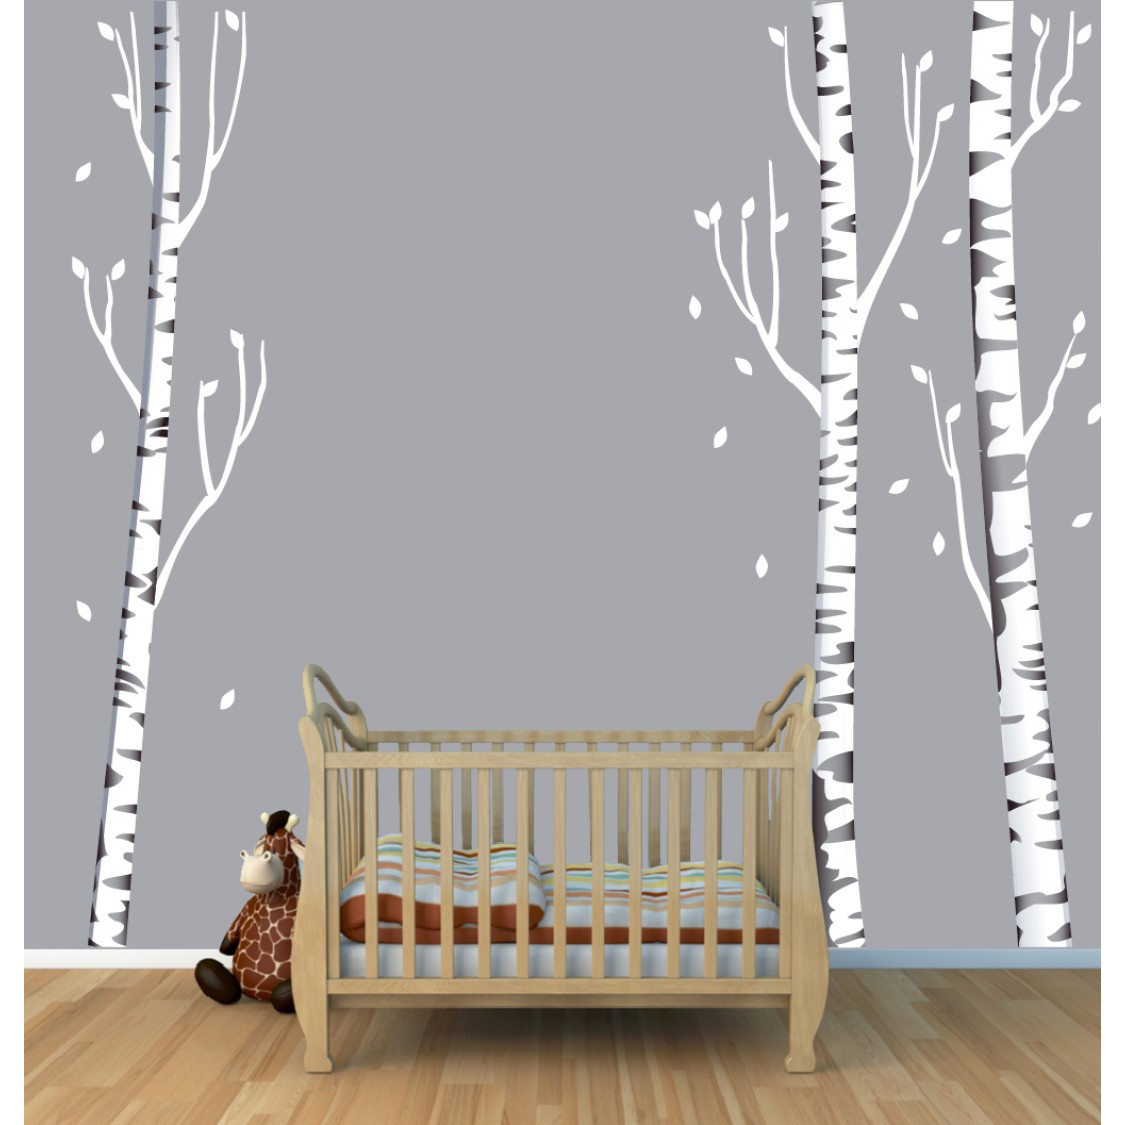 Charmant Tree Wall Art With Birch Tree Wall Decals For Kids Rooms